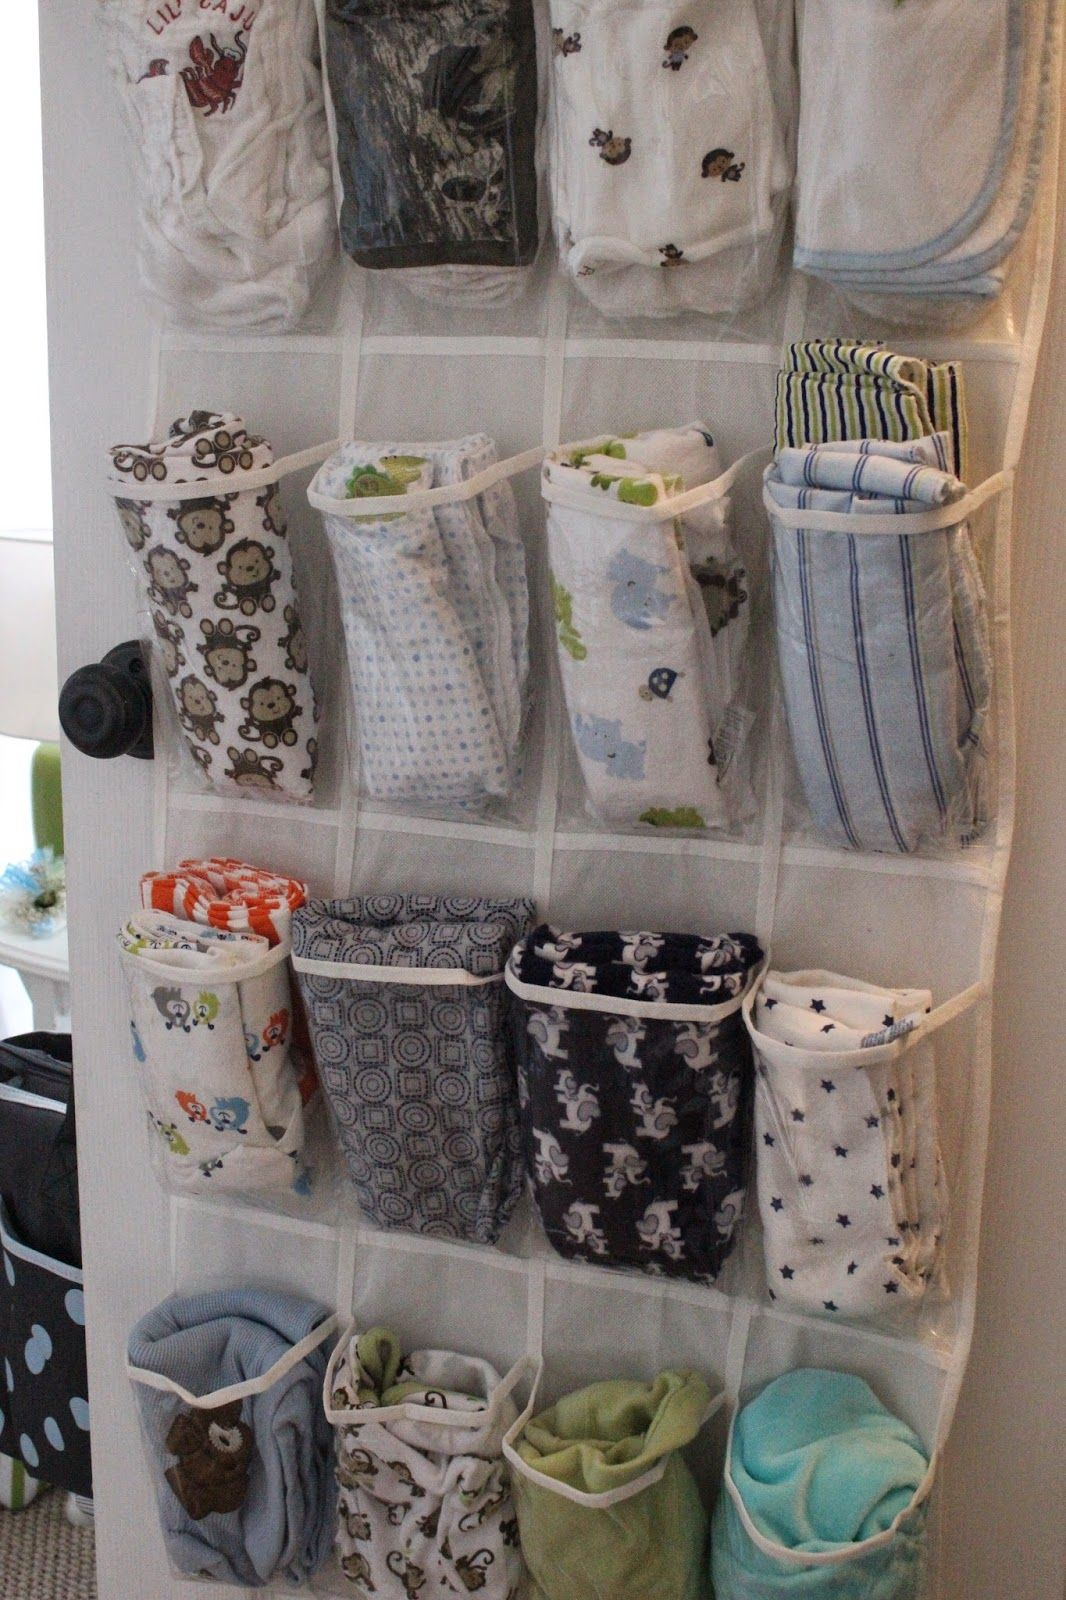 Best 25+ Baby Room Storage Ideas On Pinterest | Nursery Storage, Baby Room  Organizing And Baby Closet Organization